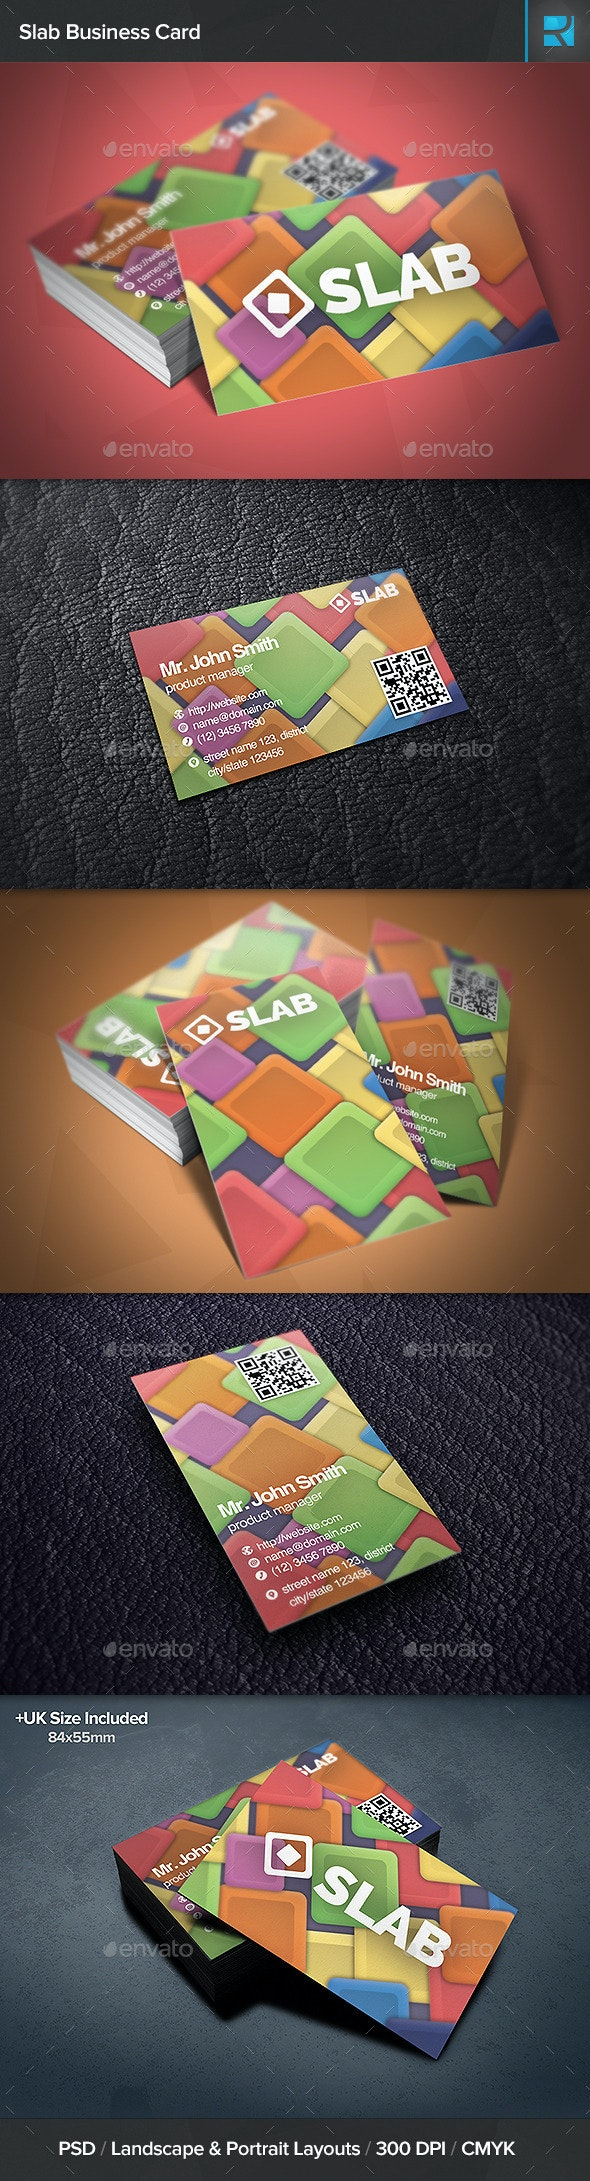 Slab Business Card - Creative Business Cards